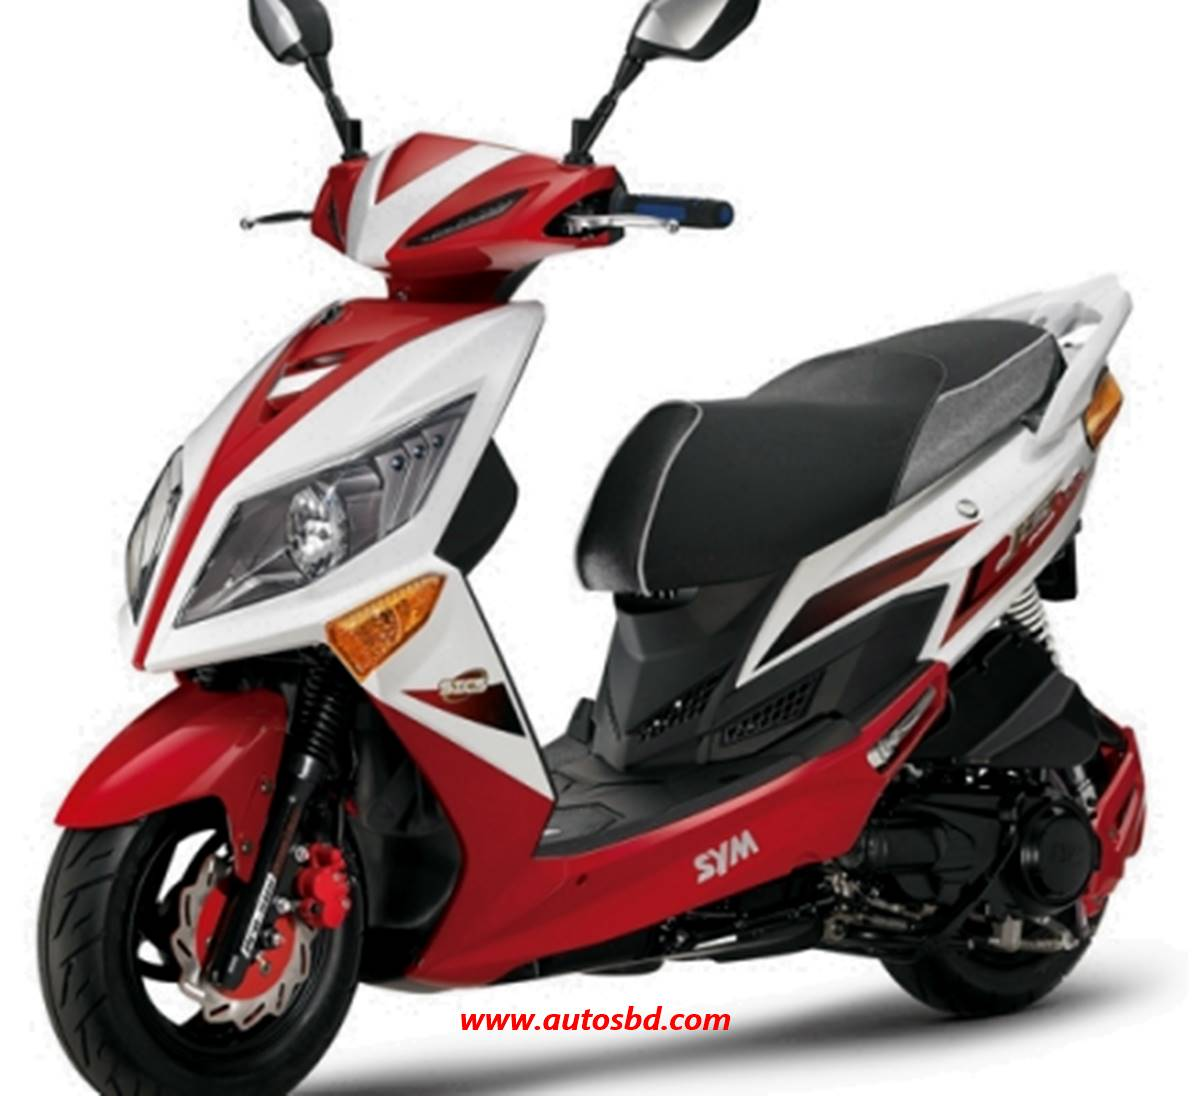 Sym Jet Power 150 Motorcycle Specification